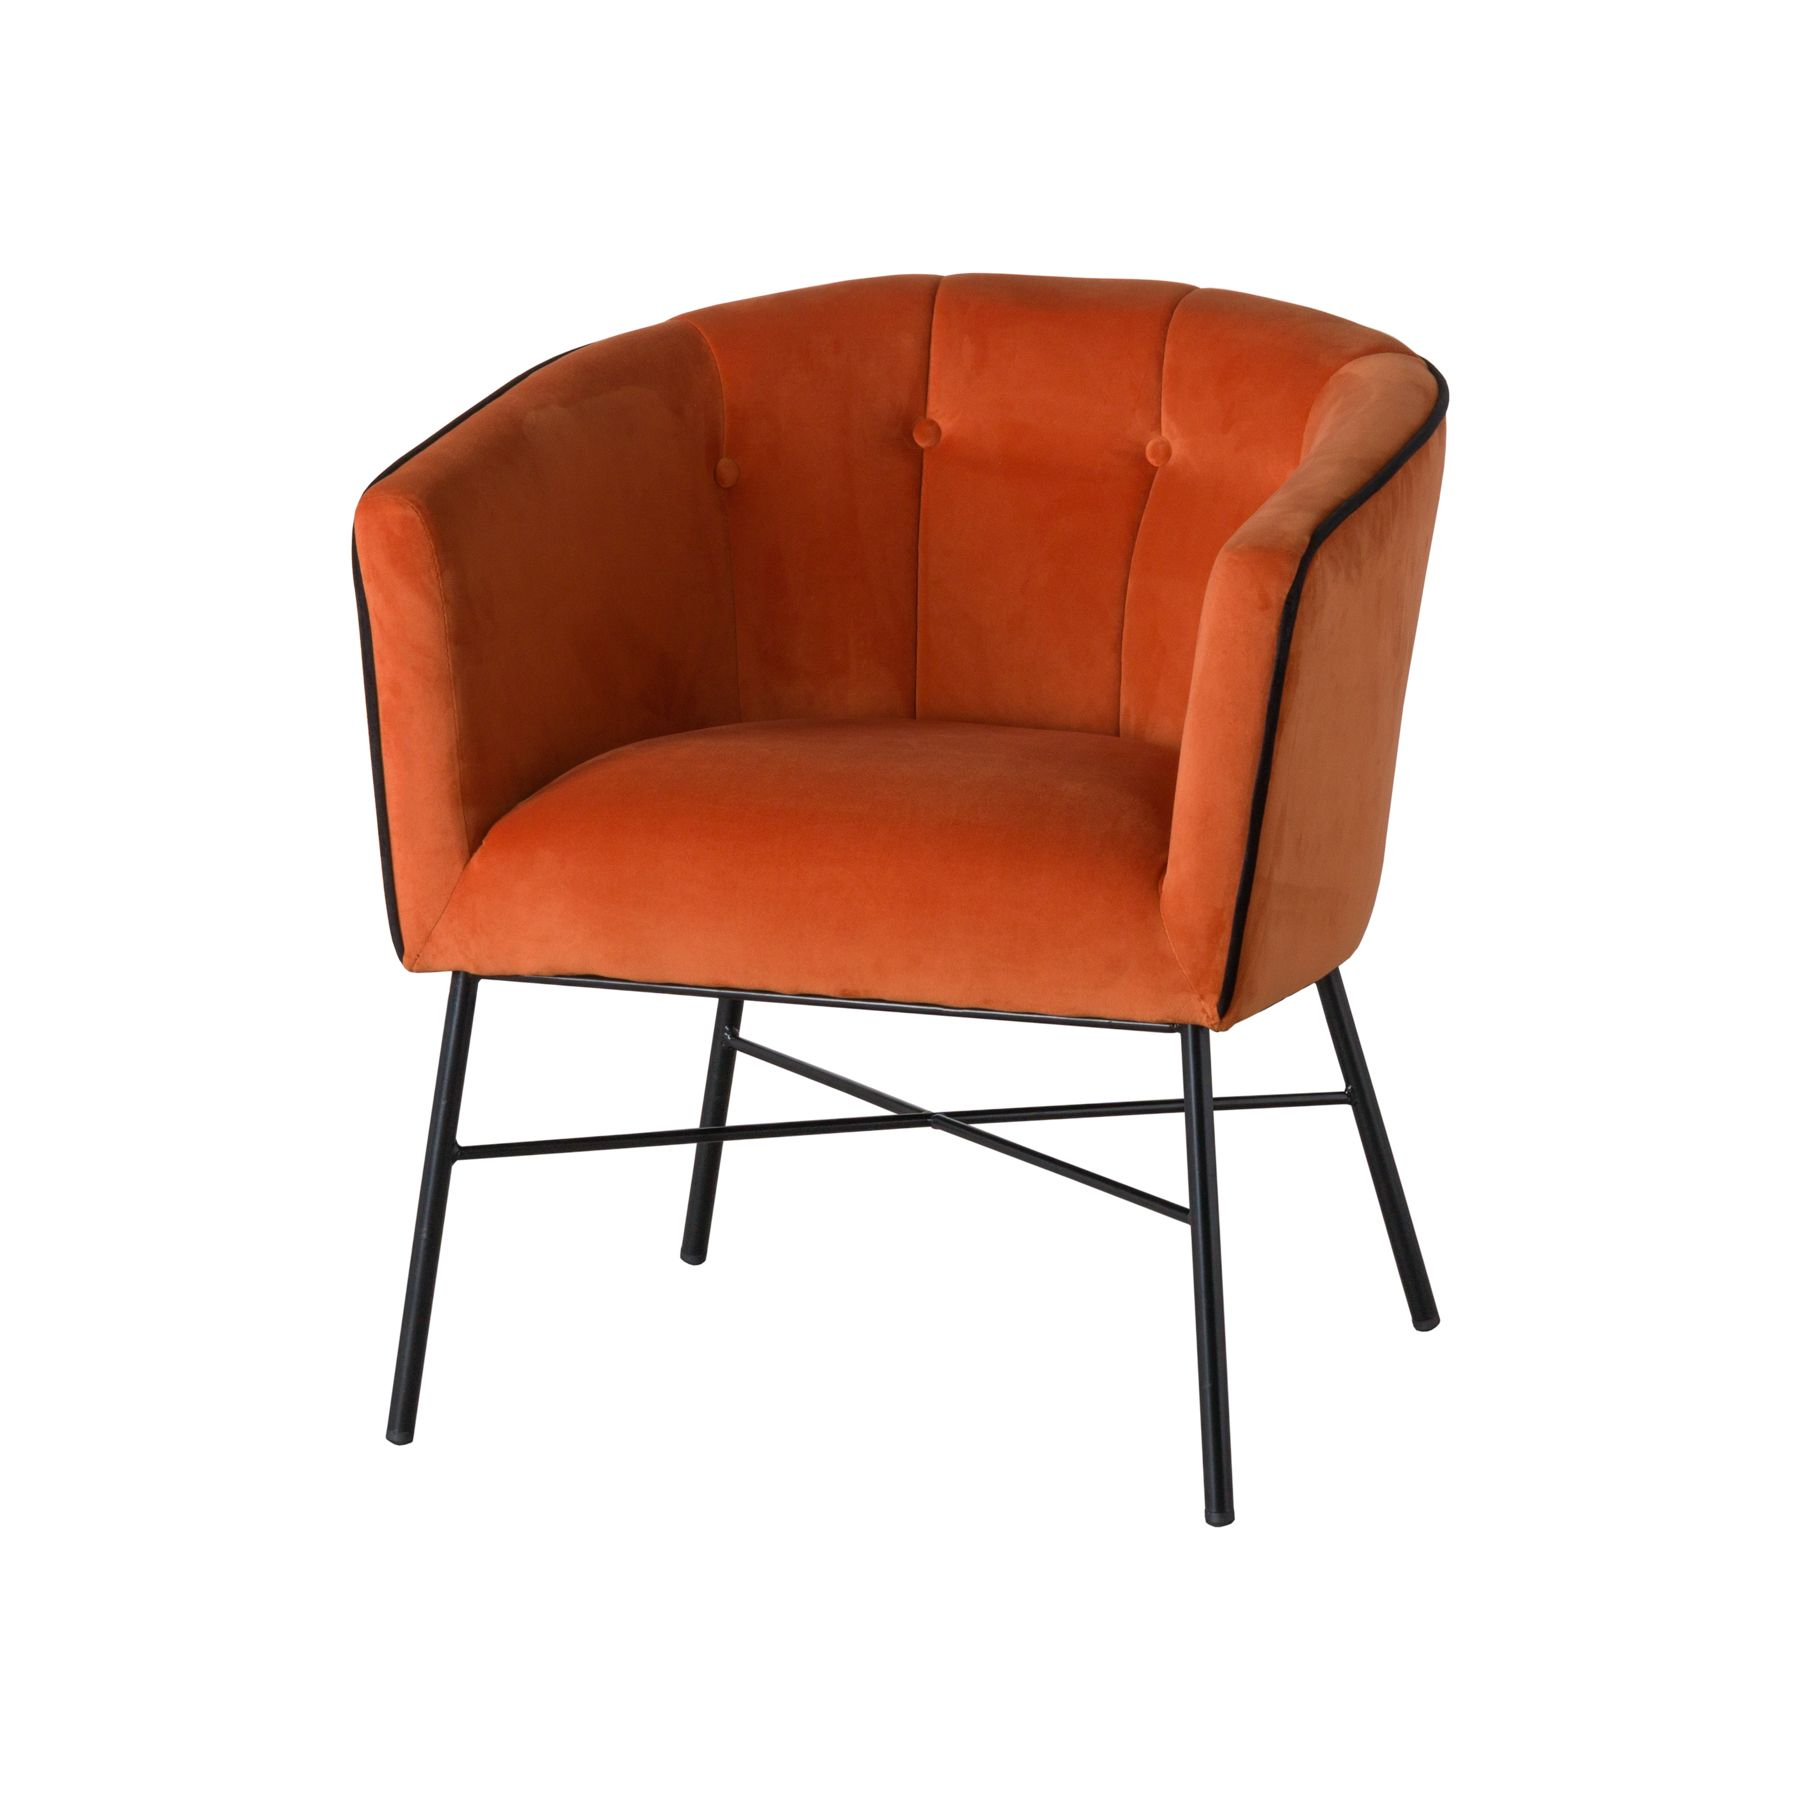 large tub chair leather side this is the rust velvet urban at 72cm high 60cm wide and